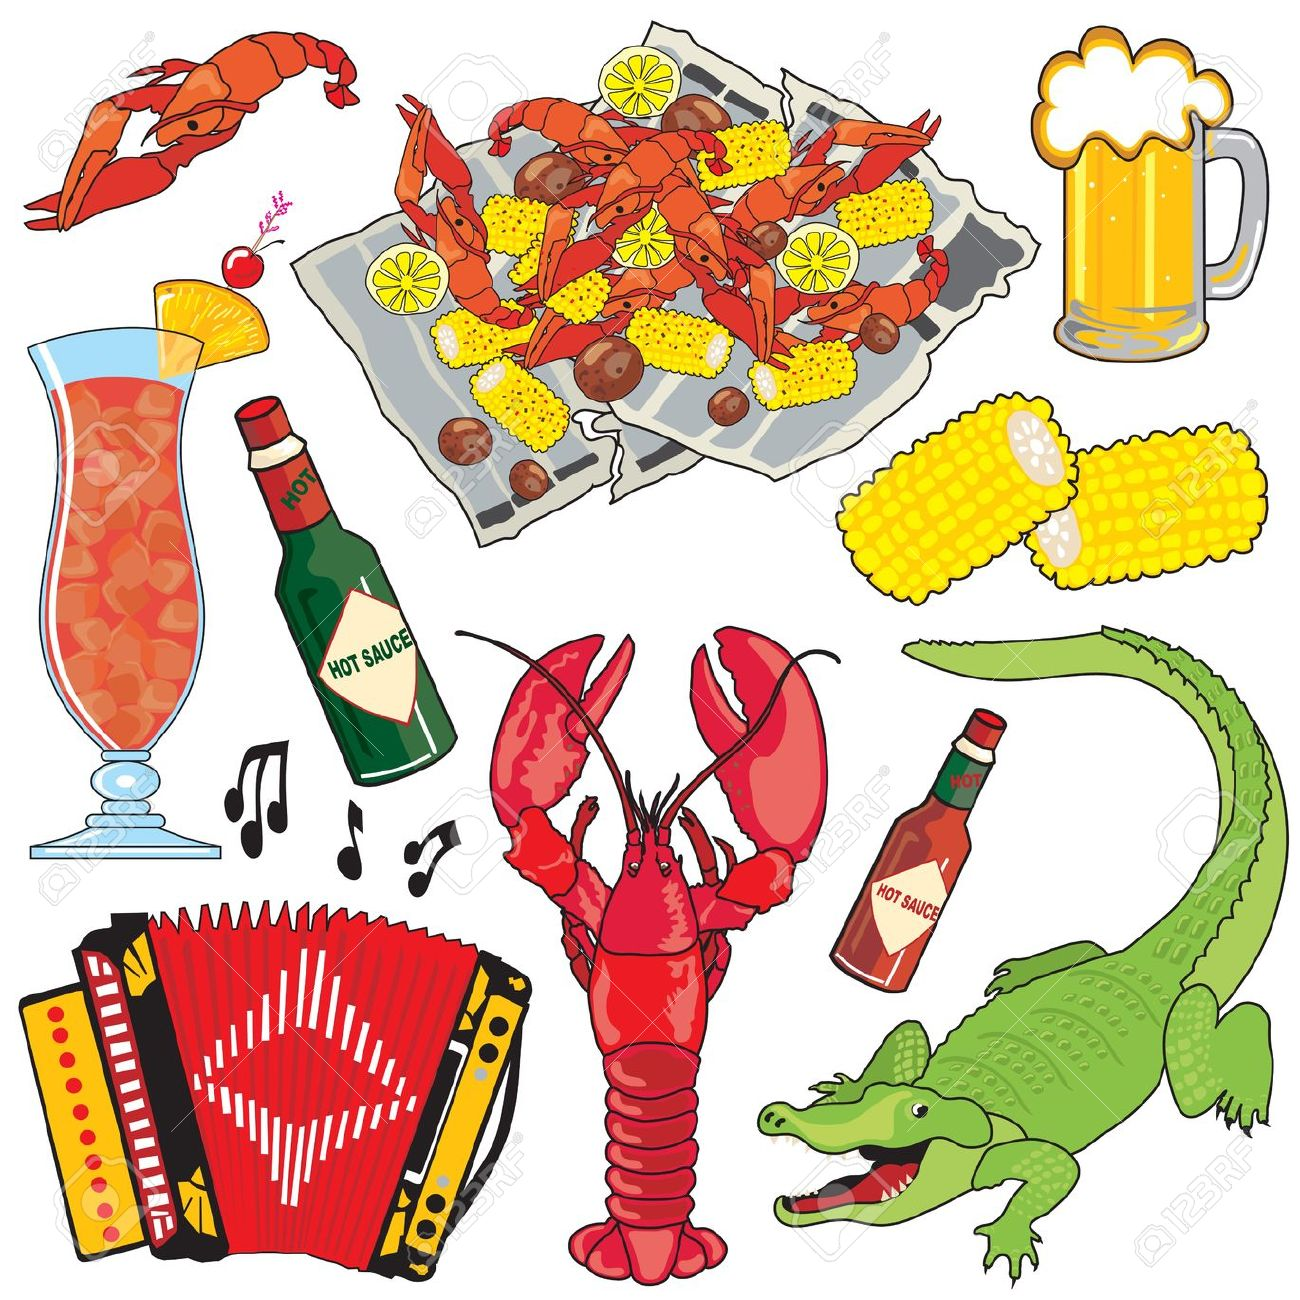 Free new orleans clipart.